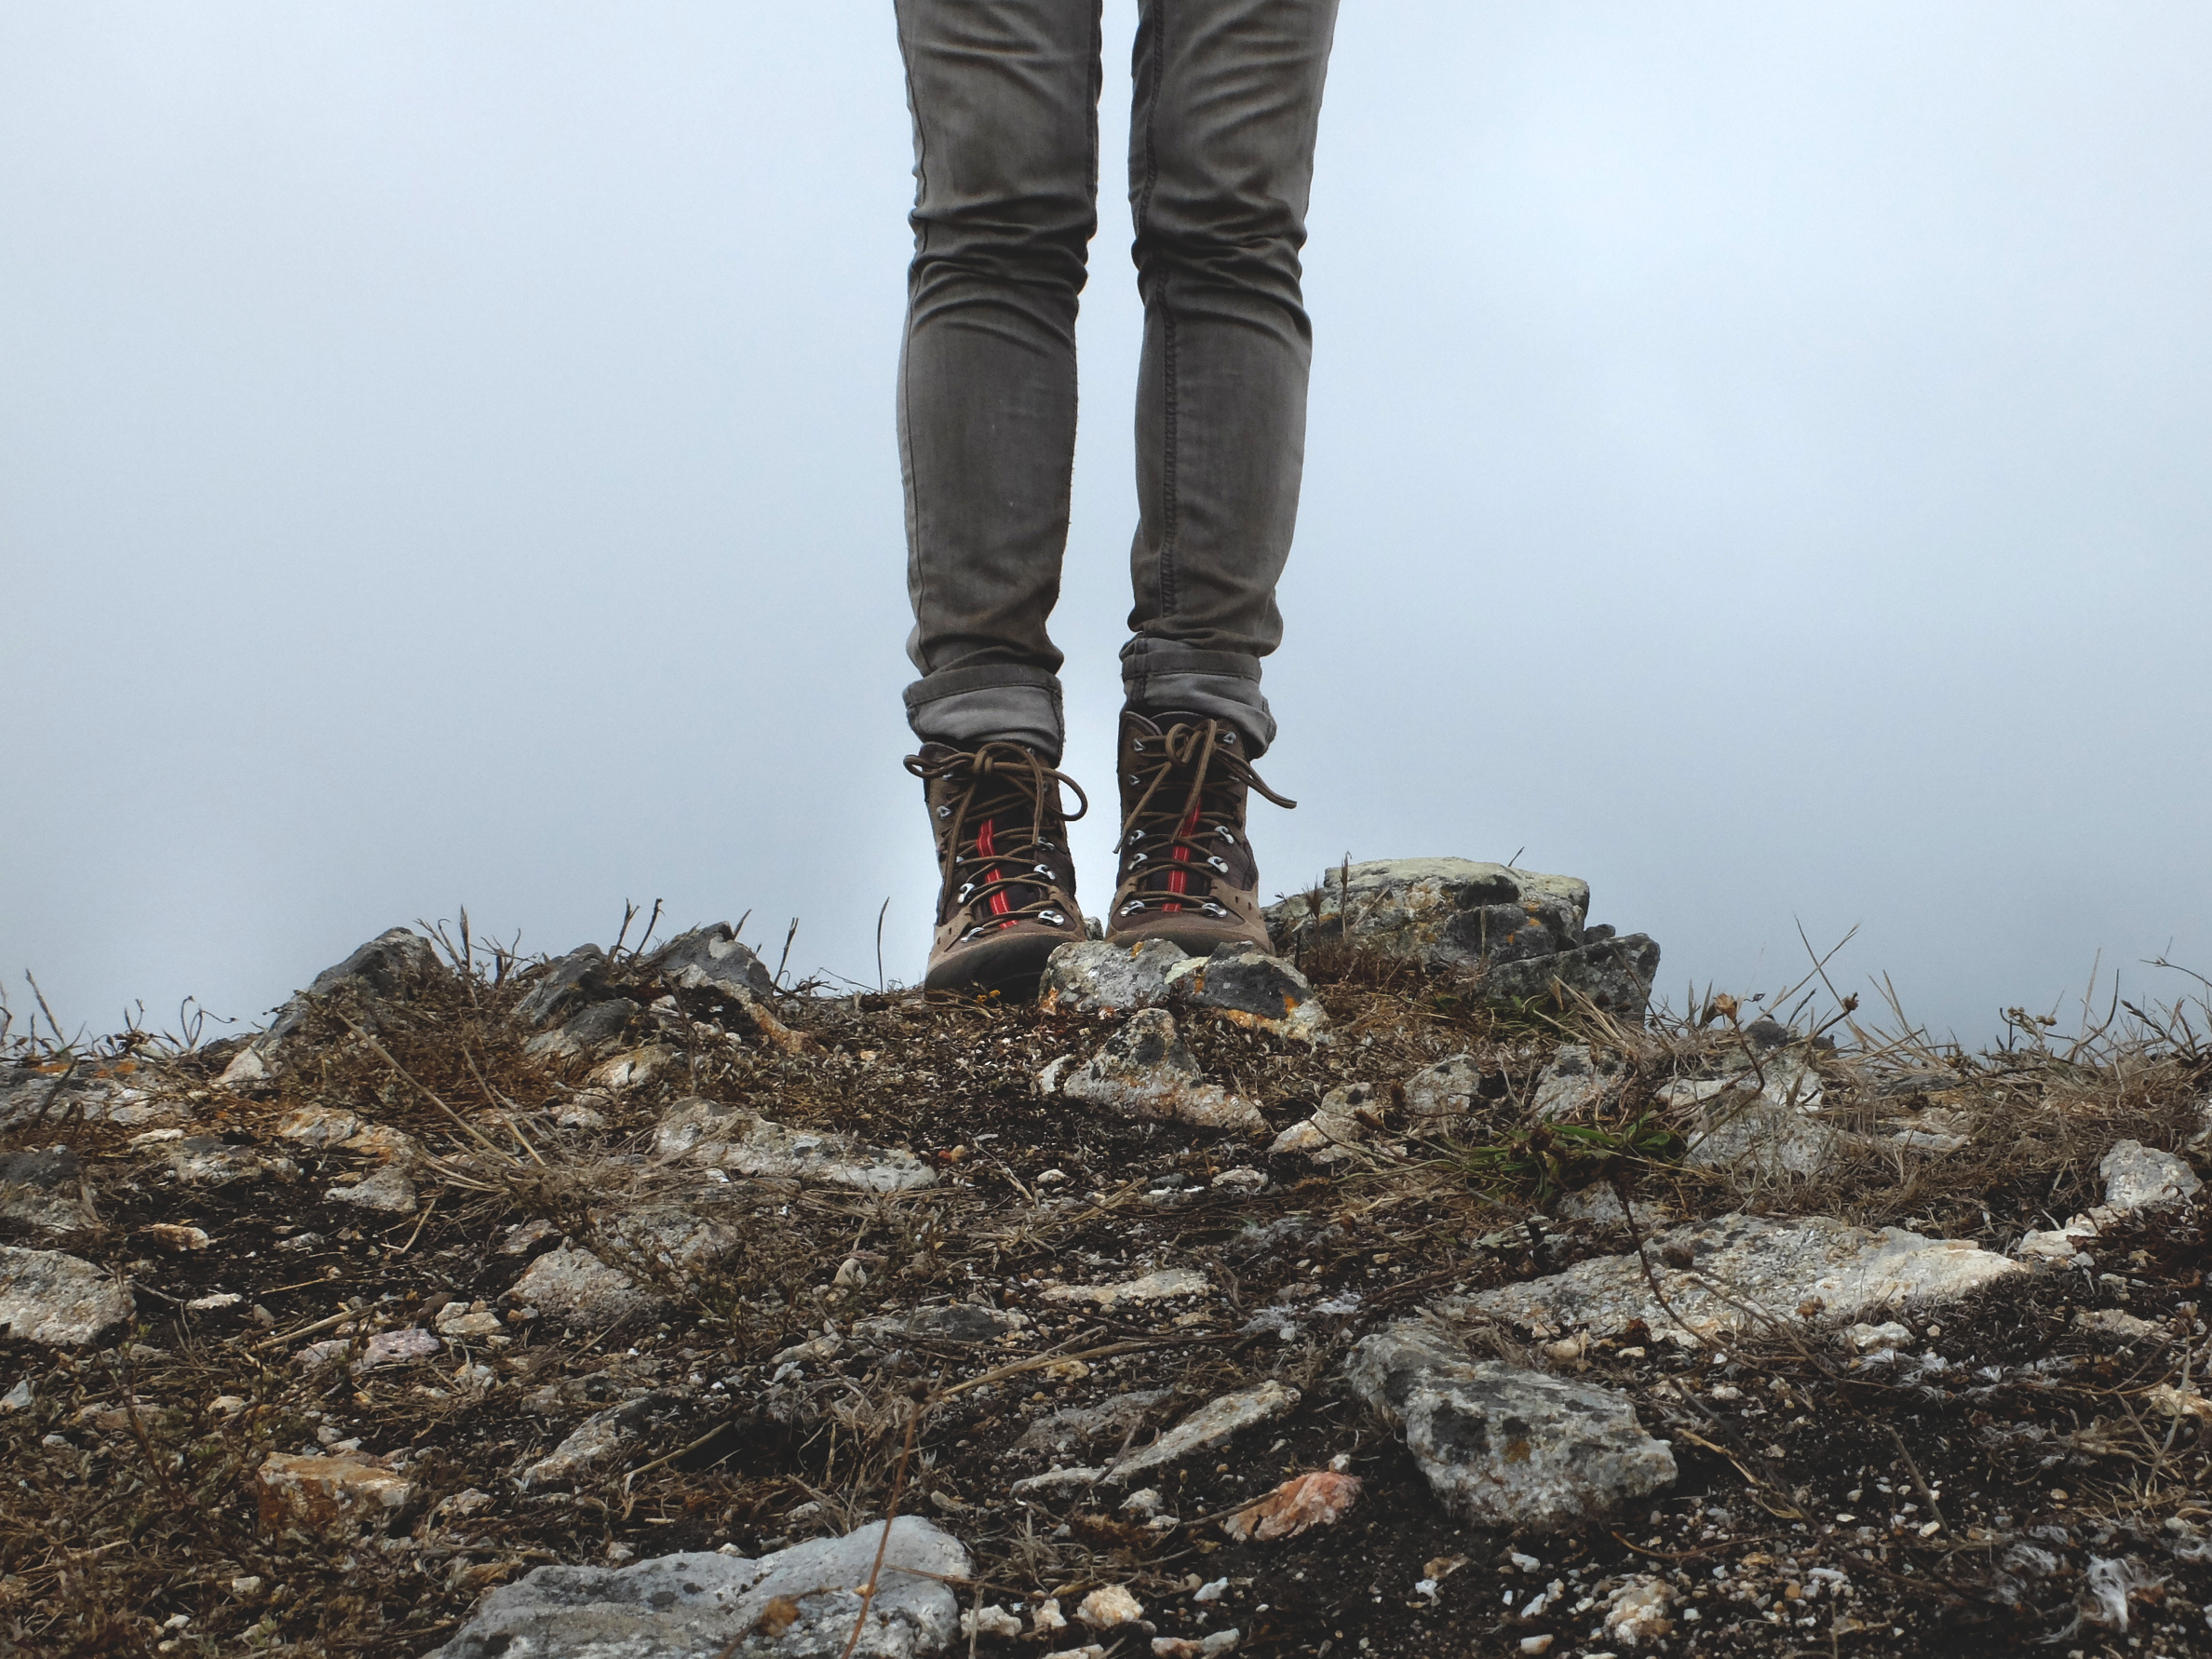 gray legs with hiking boots